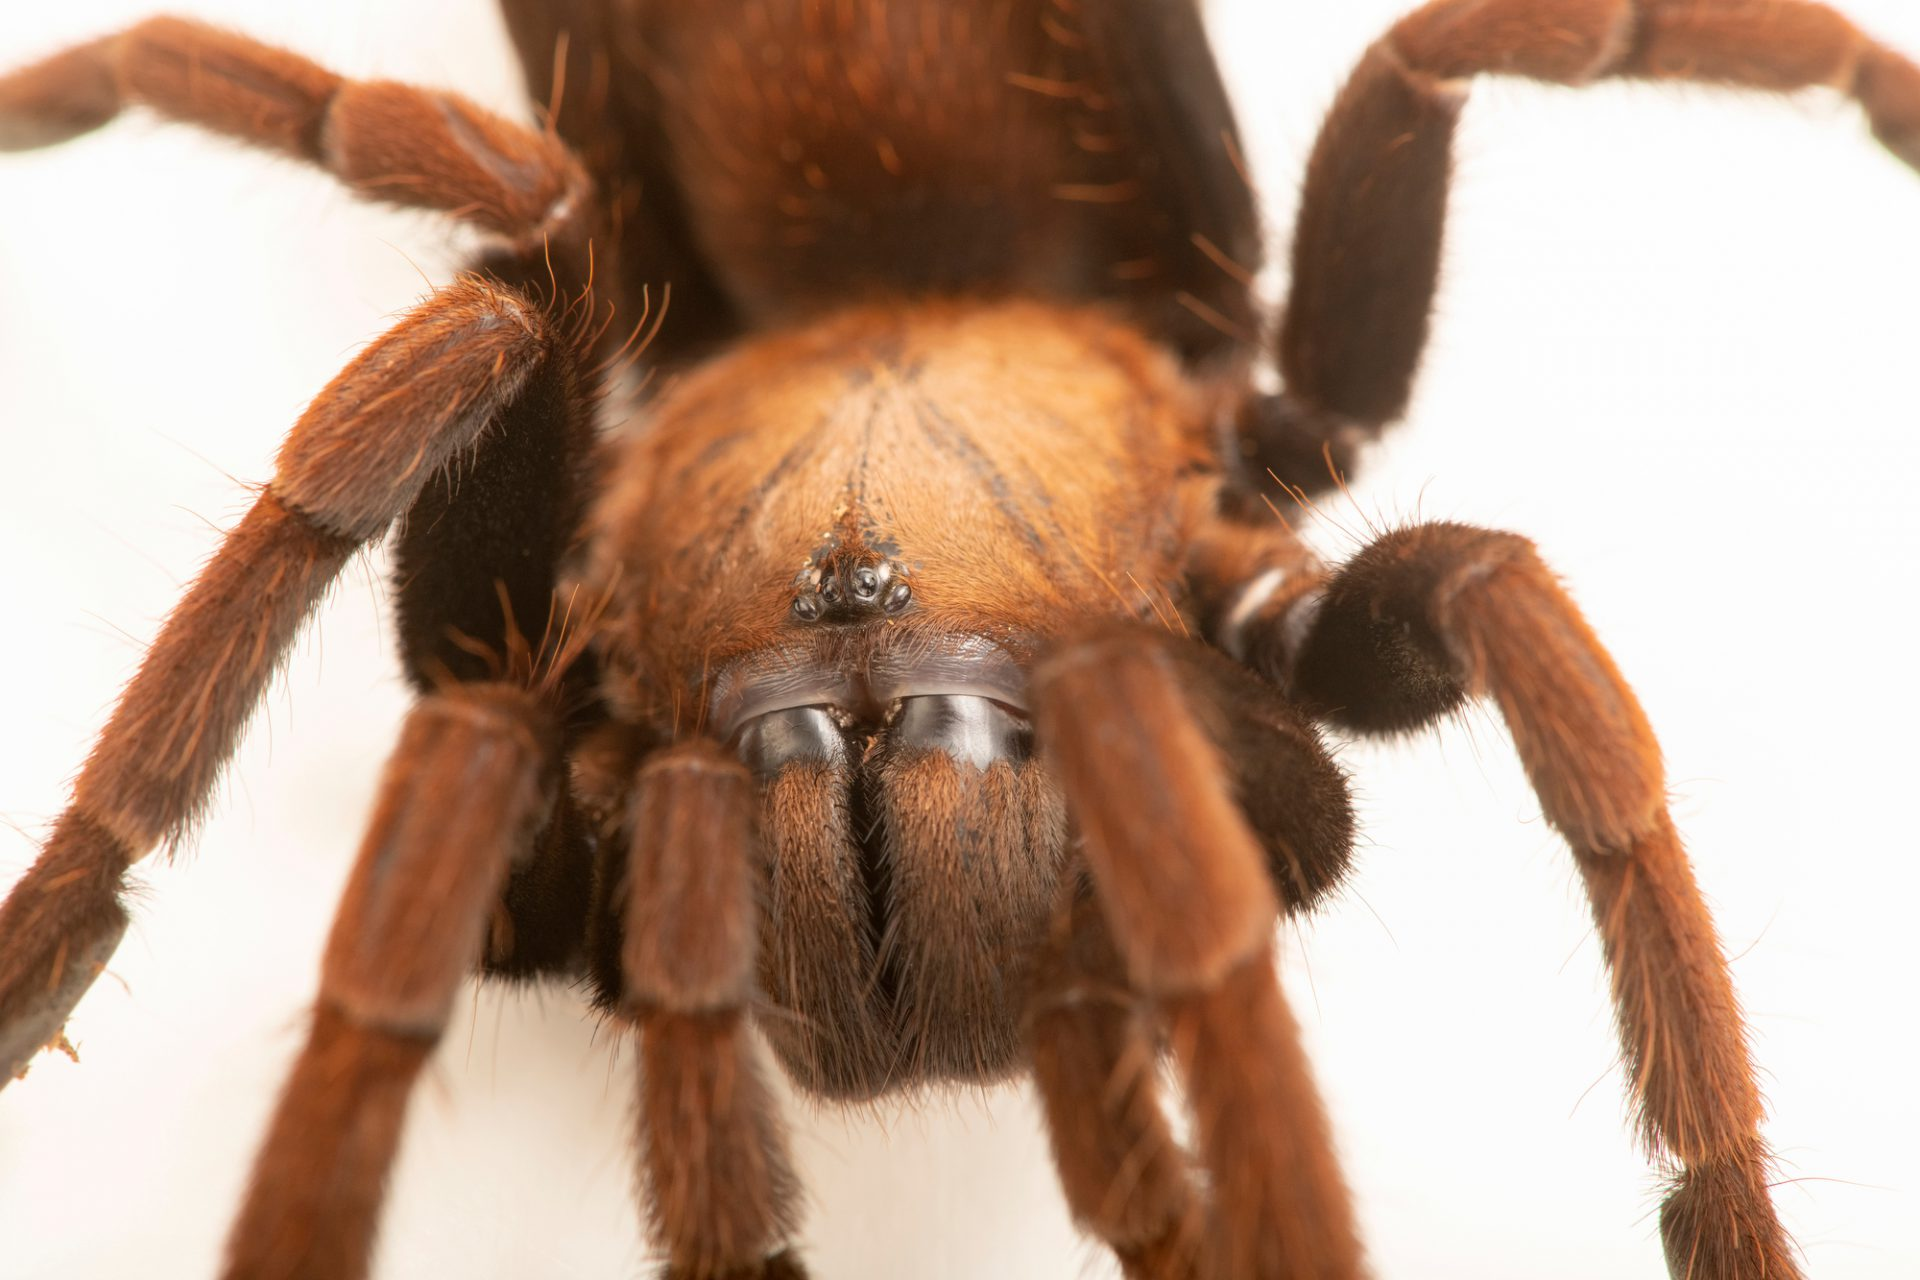 Photo: Karwar large burrowing spider (Thrigmopoeus truculentus) at the Toronto Zoo.